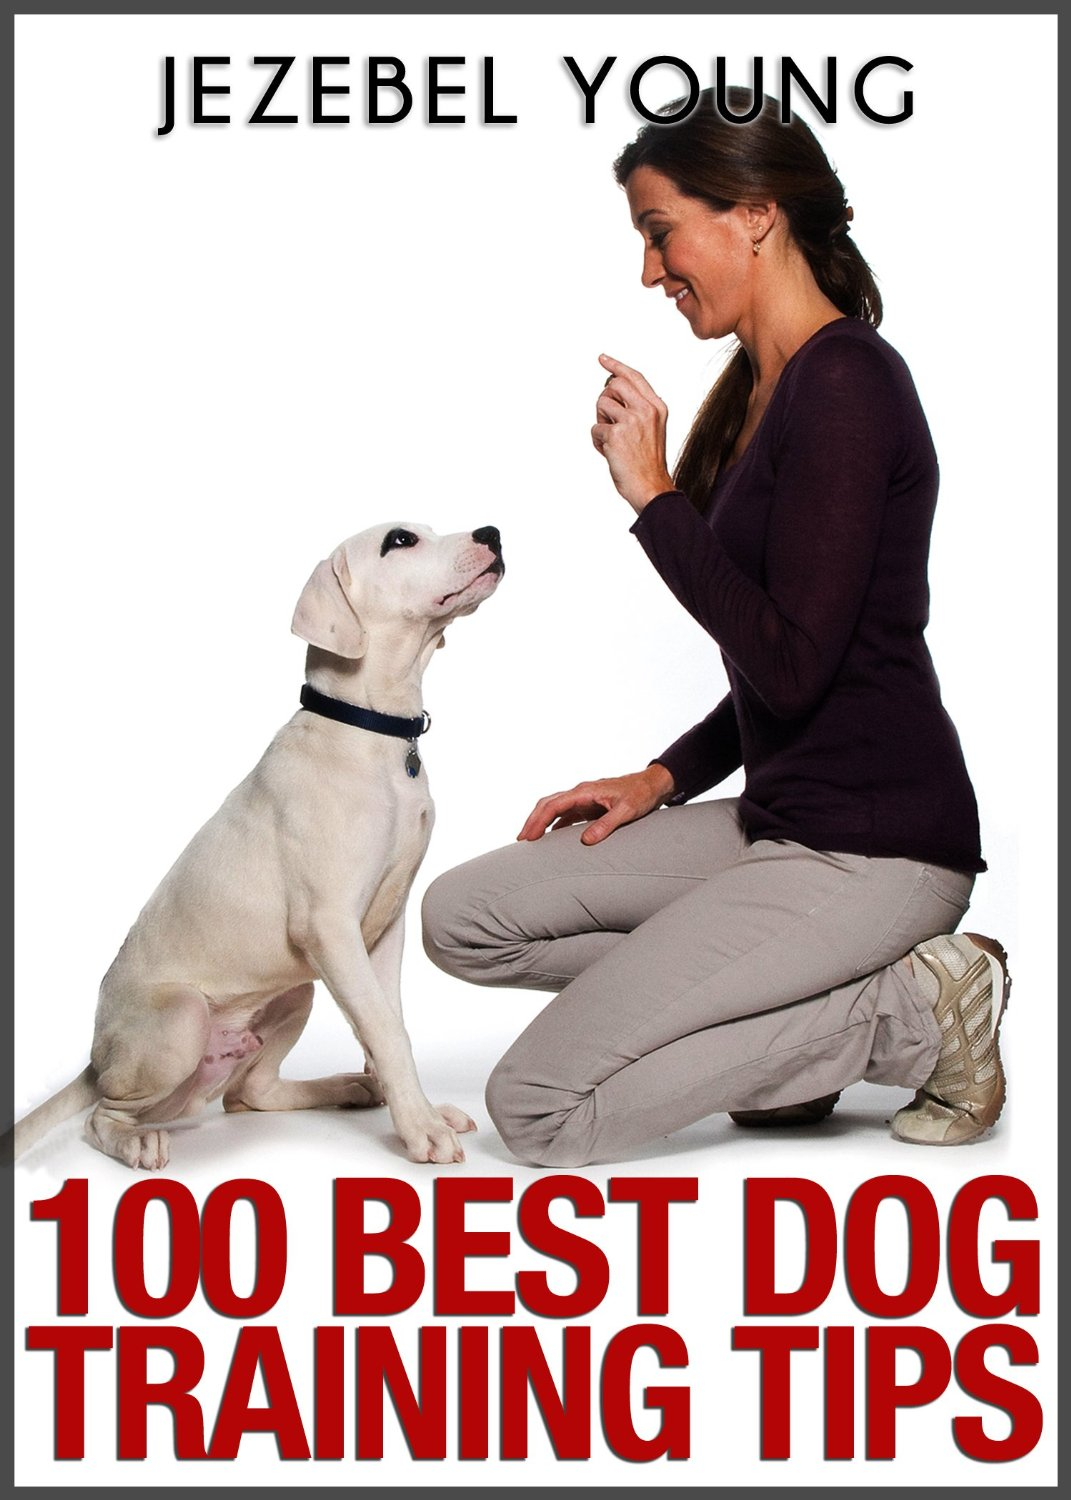 ViRT News: Book Review - 100 Dog Training Tips by Jezebel Young